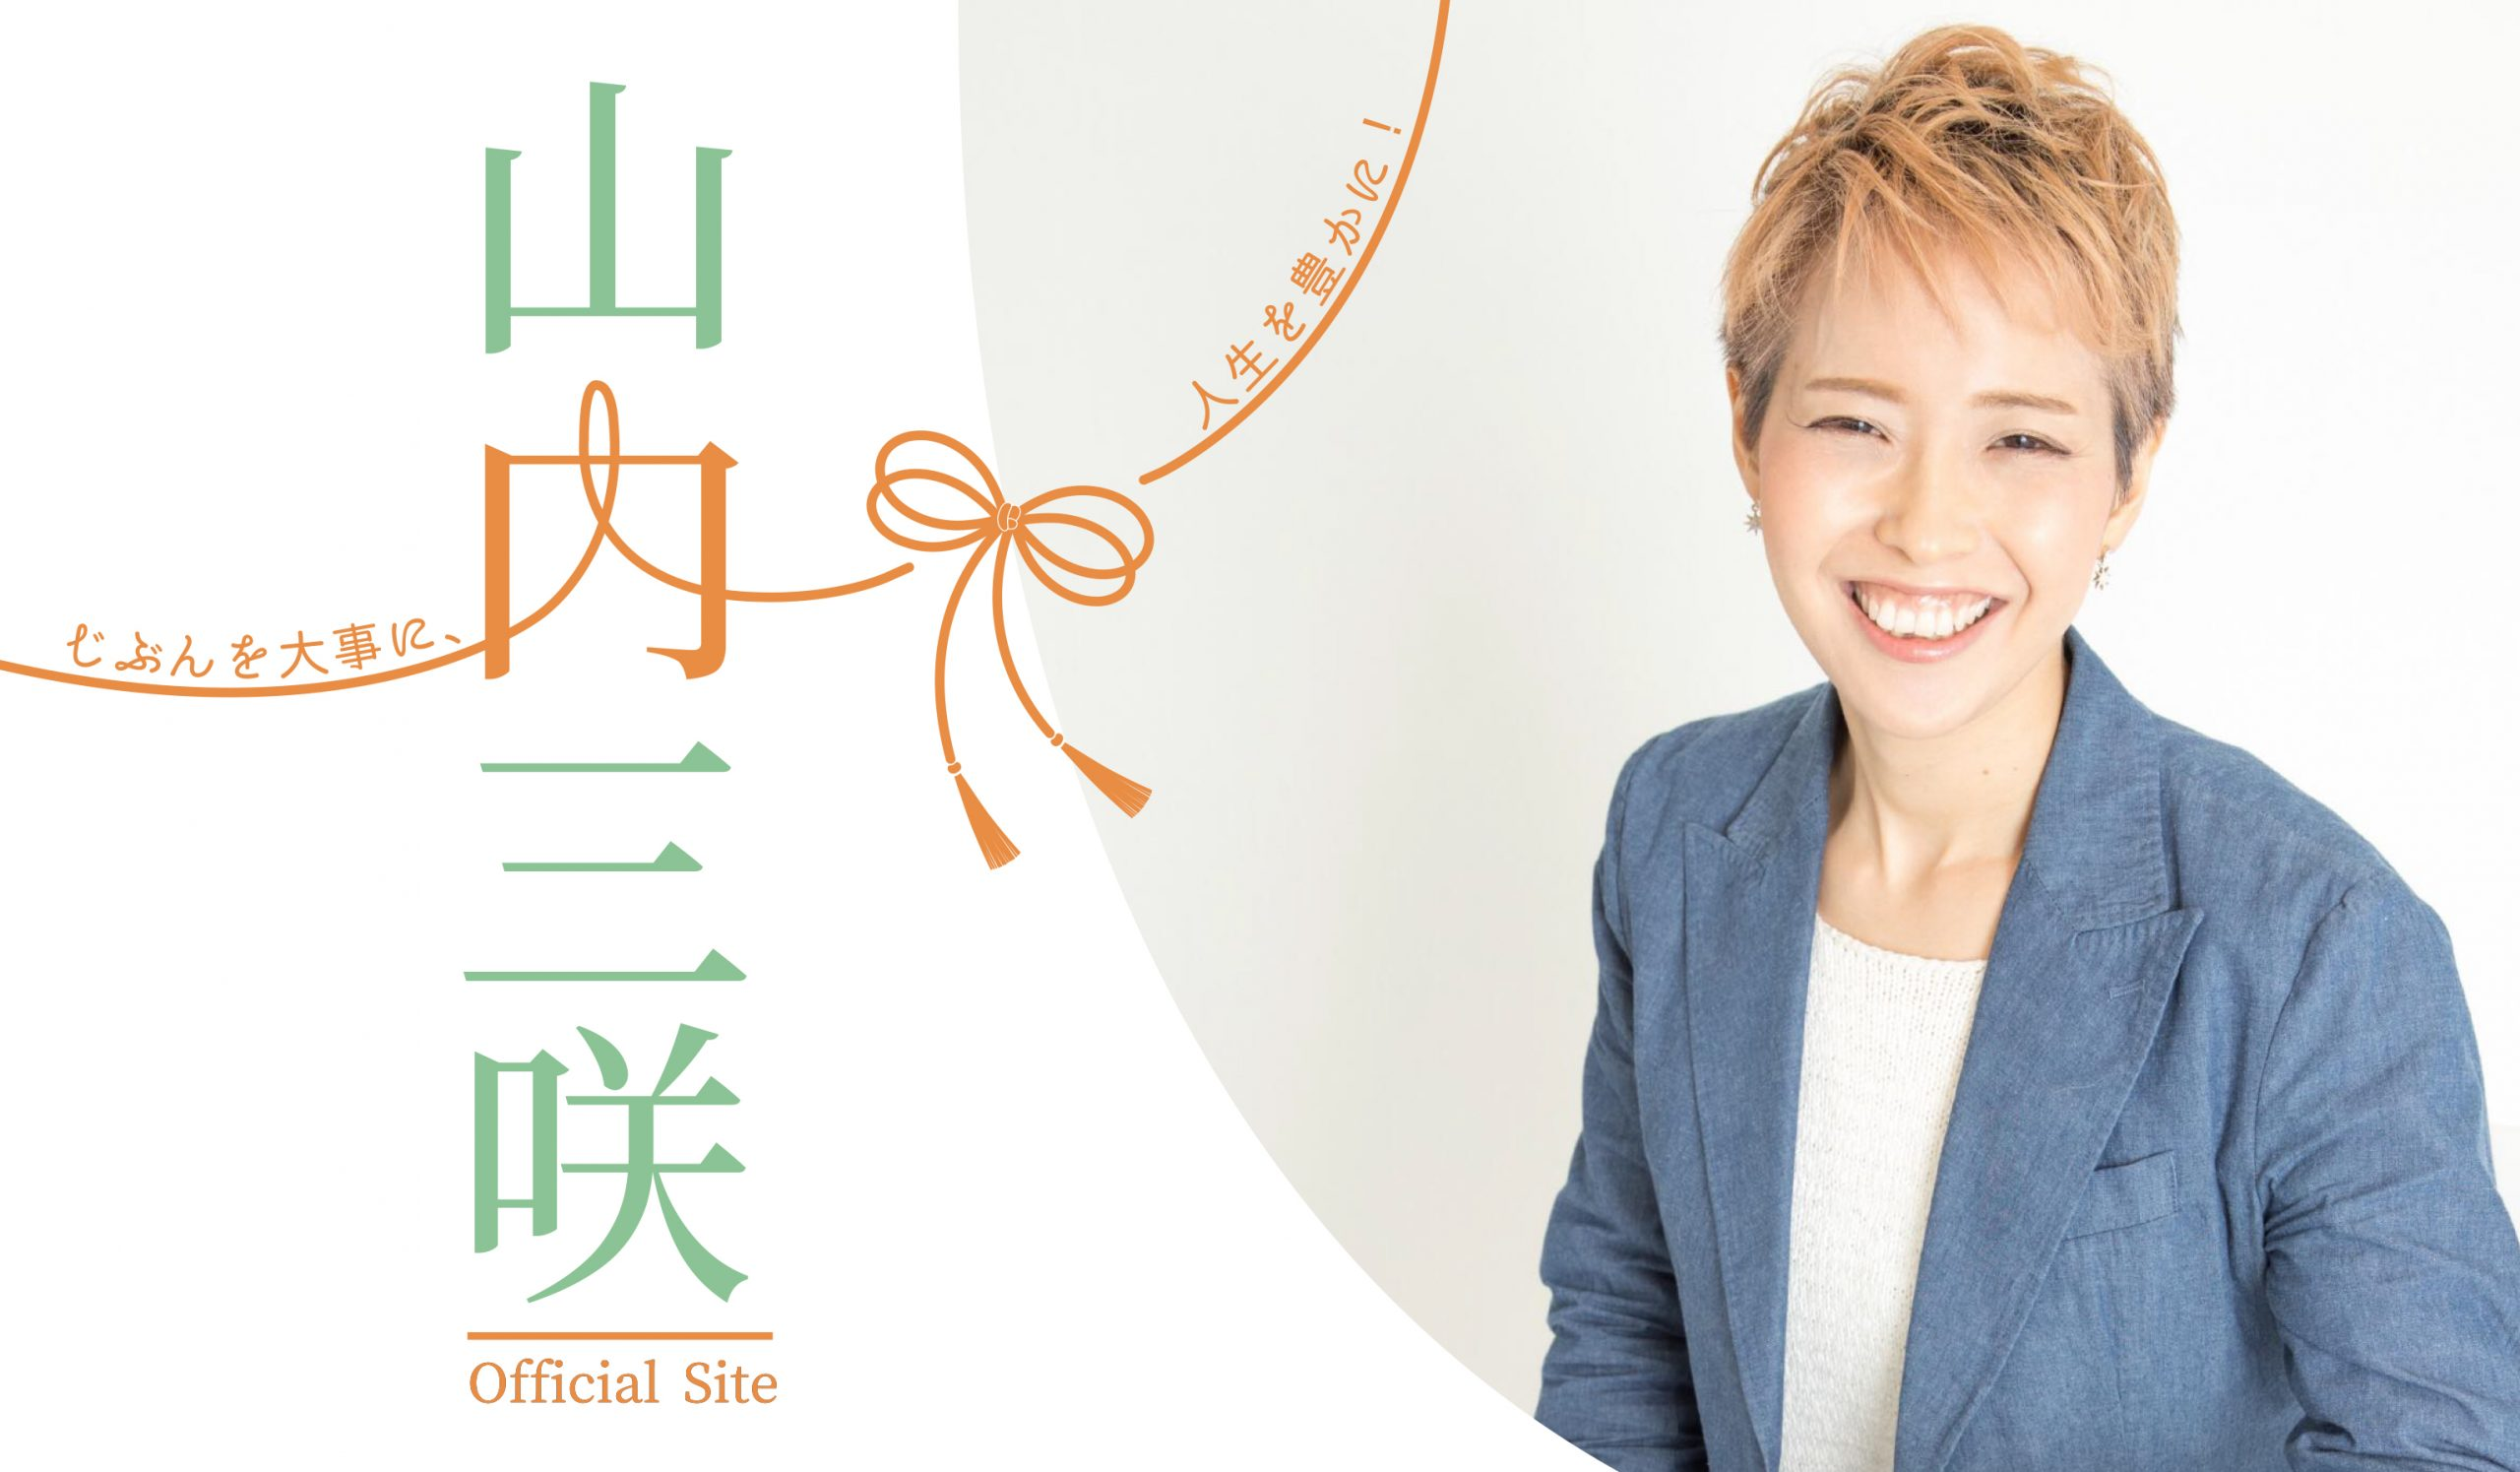 山内三咲 Official Site